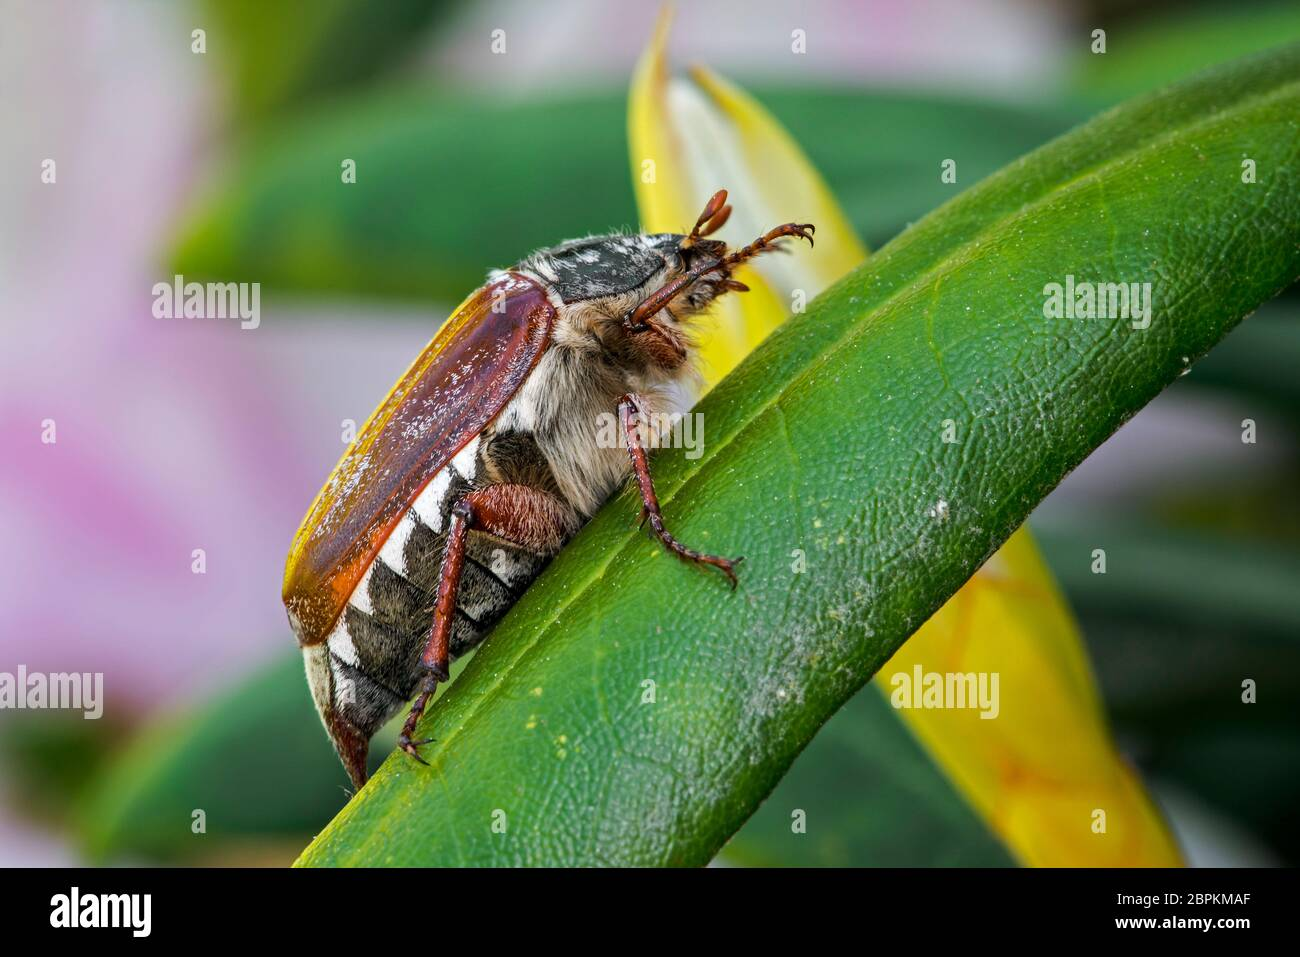 Common cockchafer / Maybug (Melolontha melolontha) on plant leaf in garden in spring Stock Photo